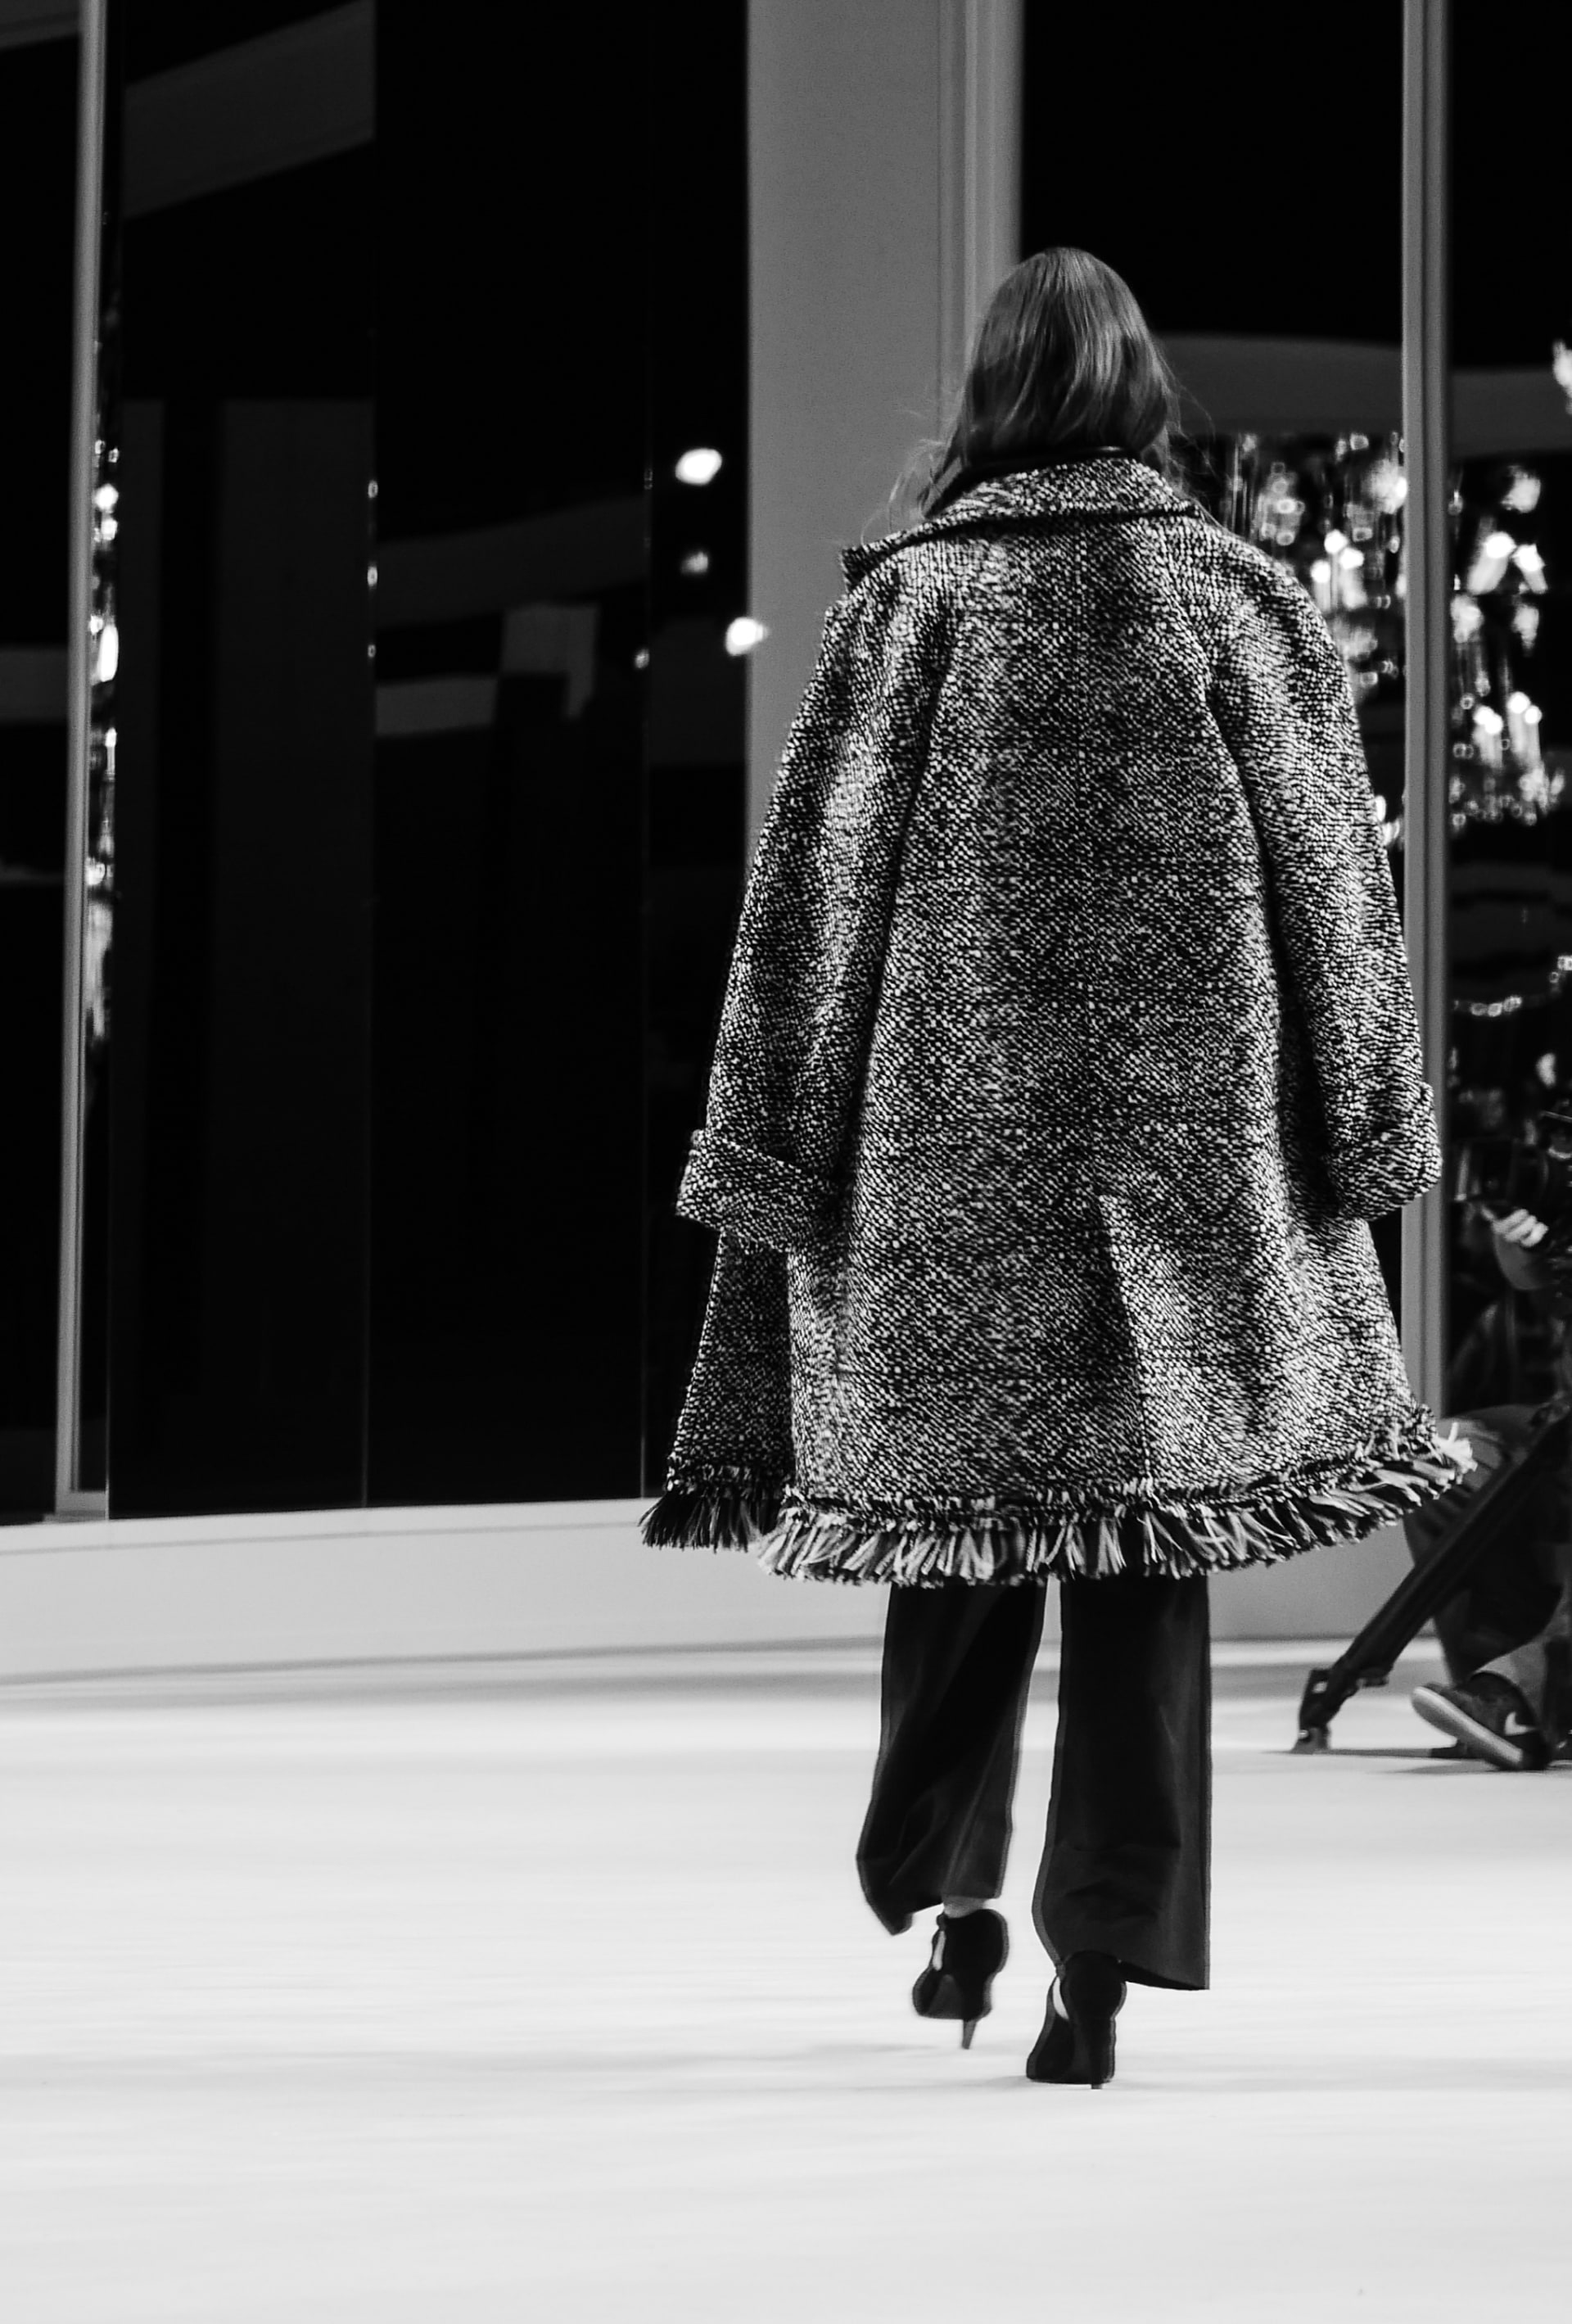 View 3 - Look 7 - Métiers d'Art 2019/20 - see full sized version